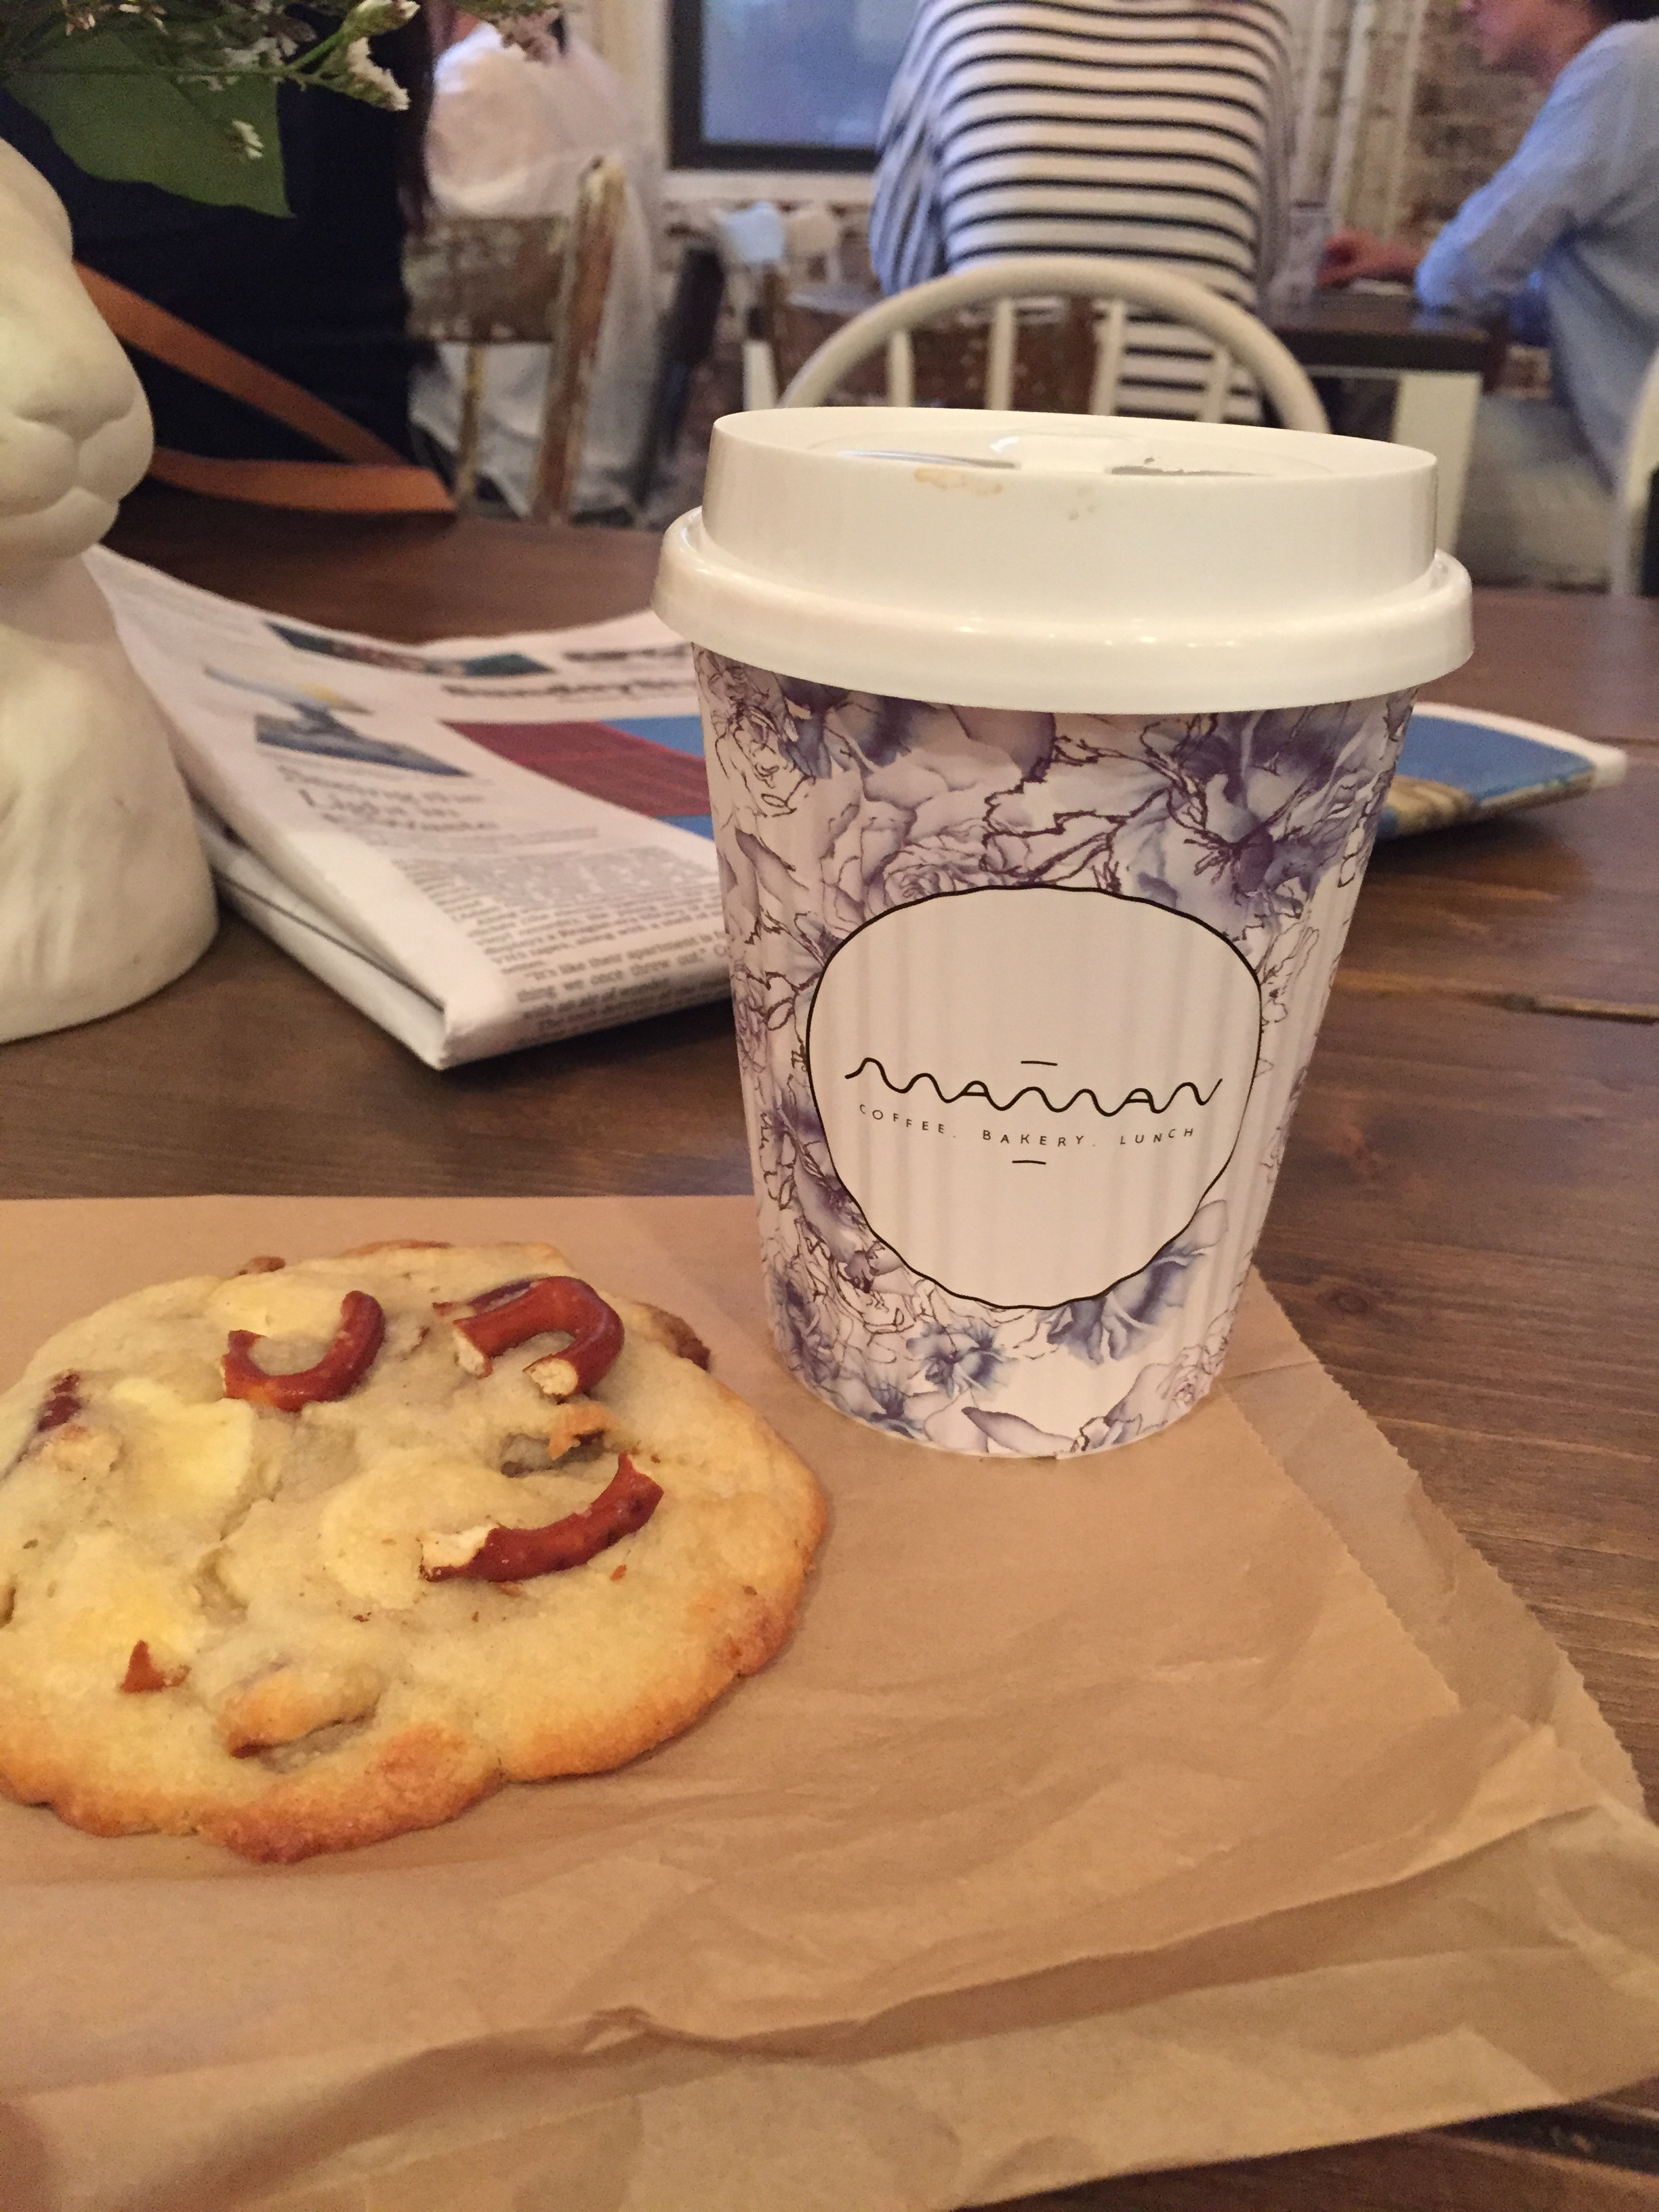 This pretzel and white chocolate cookie from  Maman  in SoHo was one of the best cookies I've ever had. The entire store was so cute, I felt like I was in a tiny shop in the french countryside.